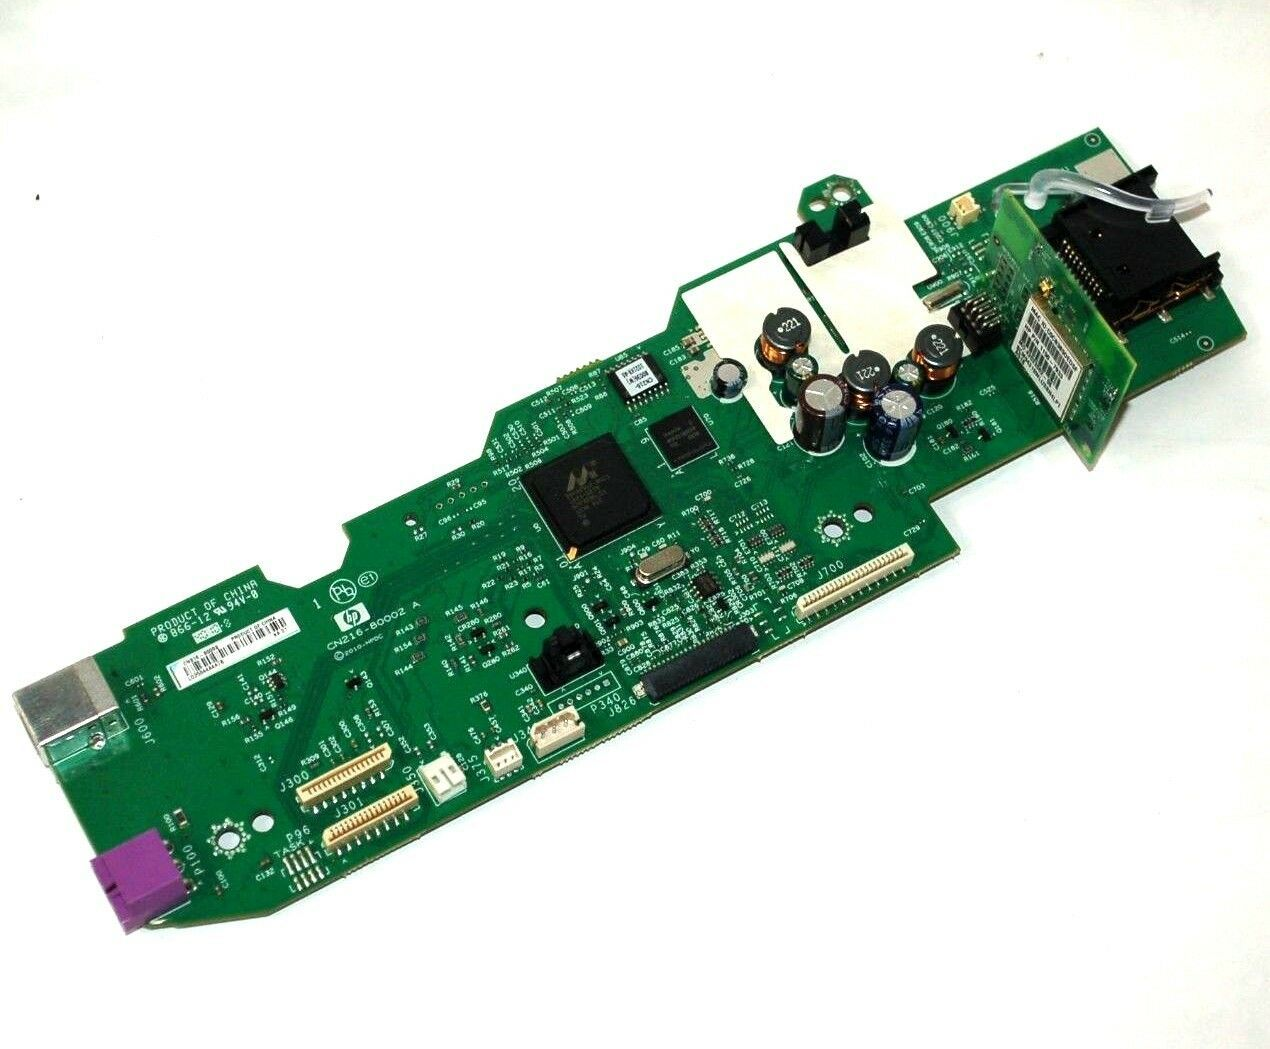 Primary image for HP PhotoSmart Plus B210a Printer Main Logic Board CN216-60002 Formatter